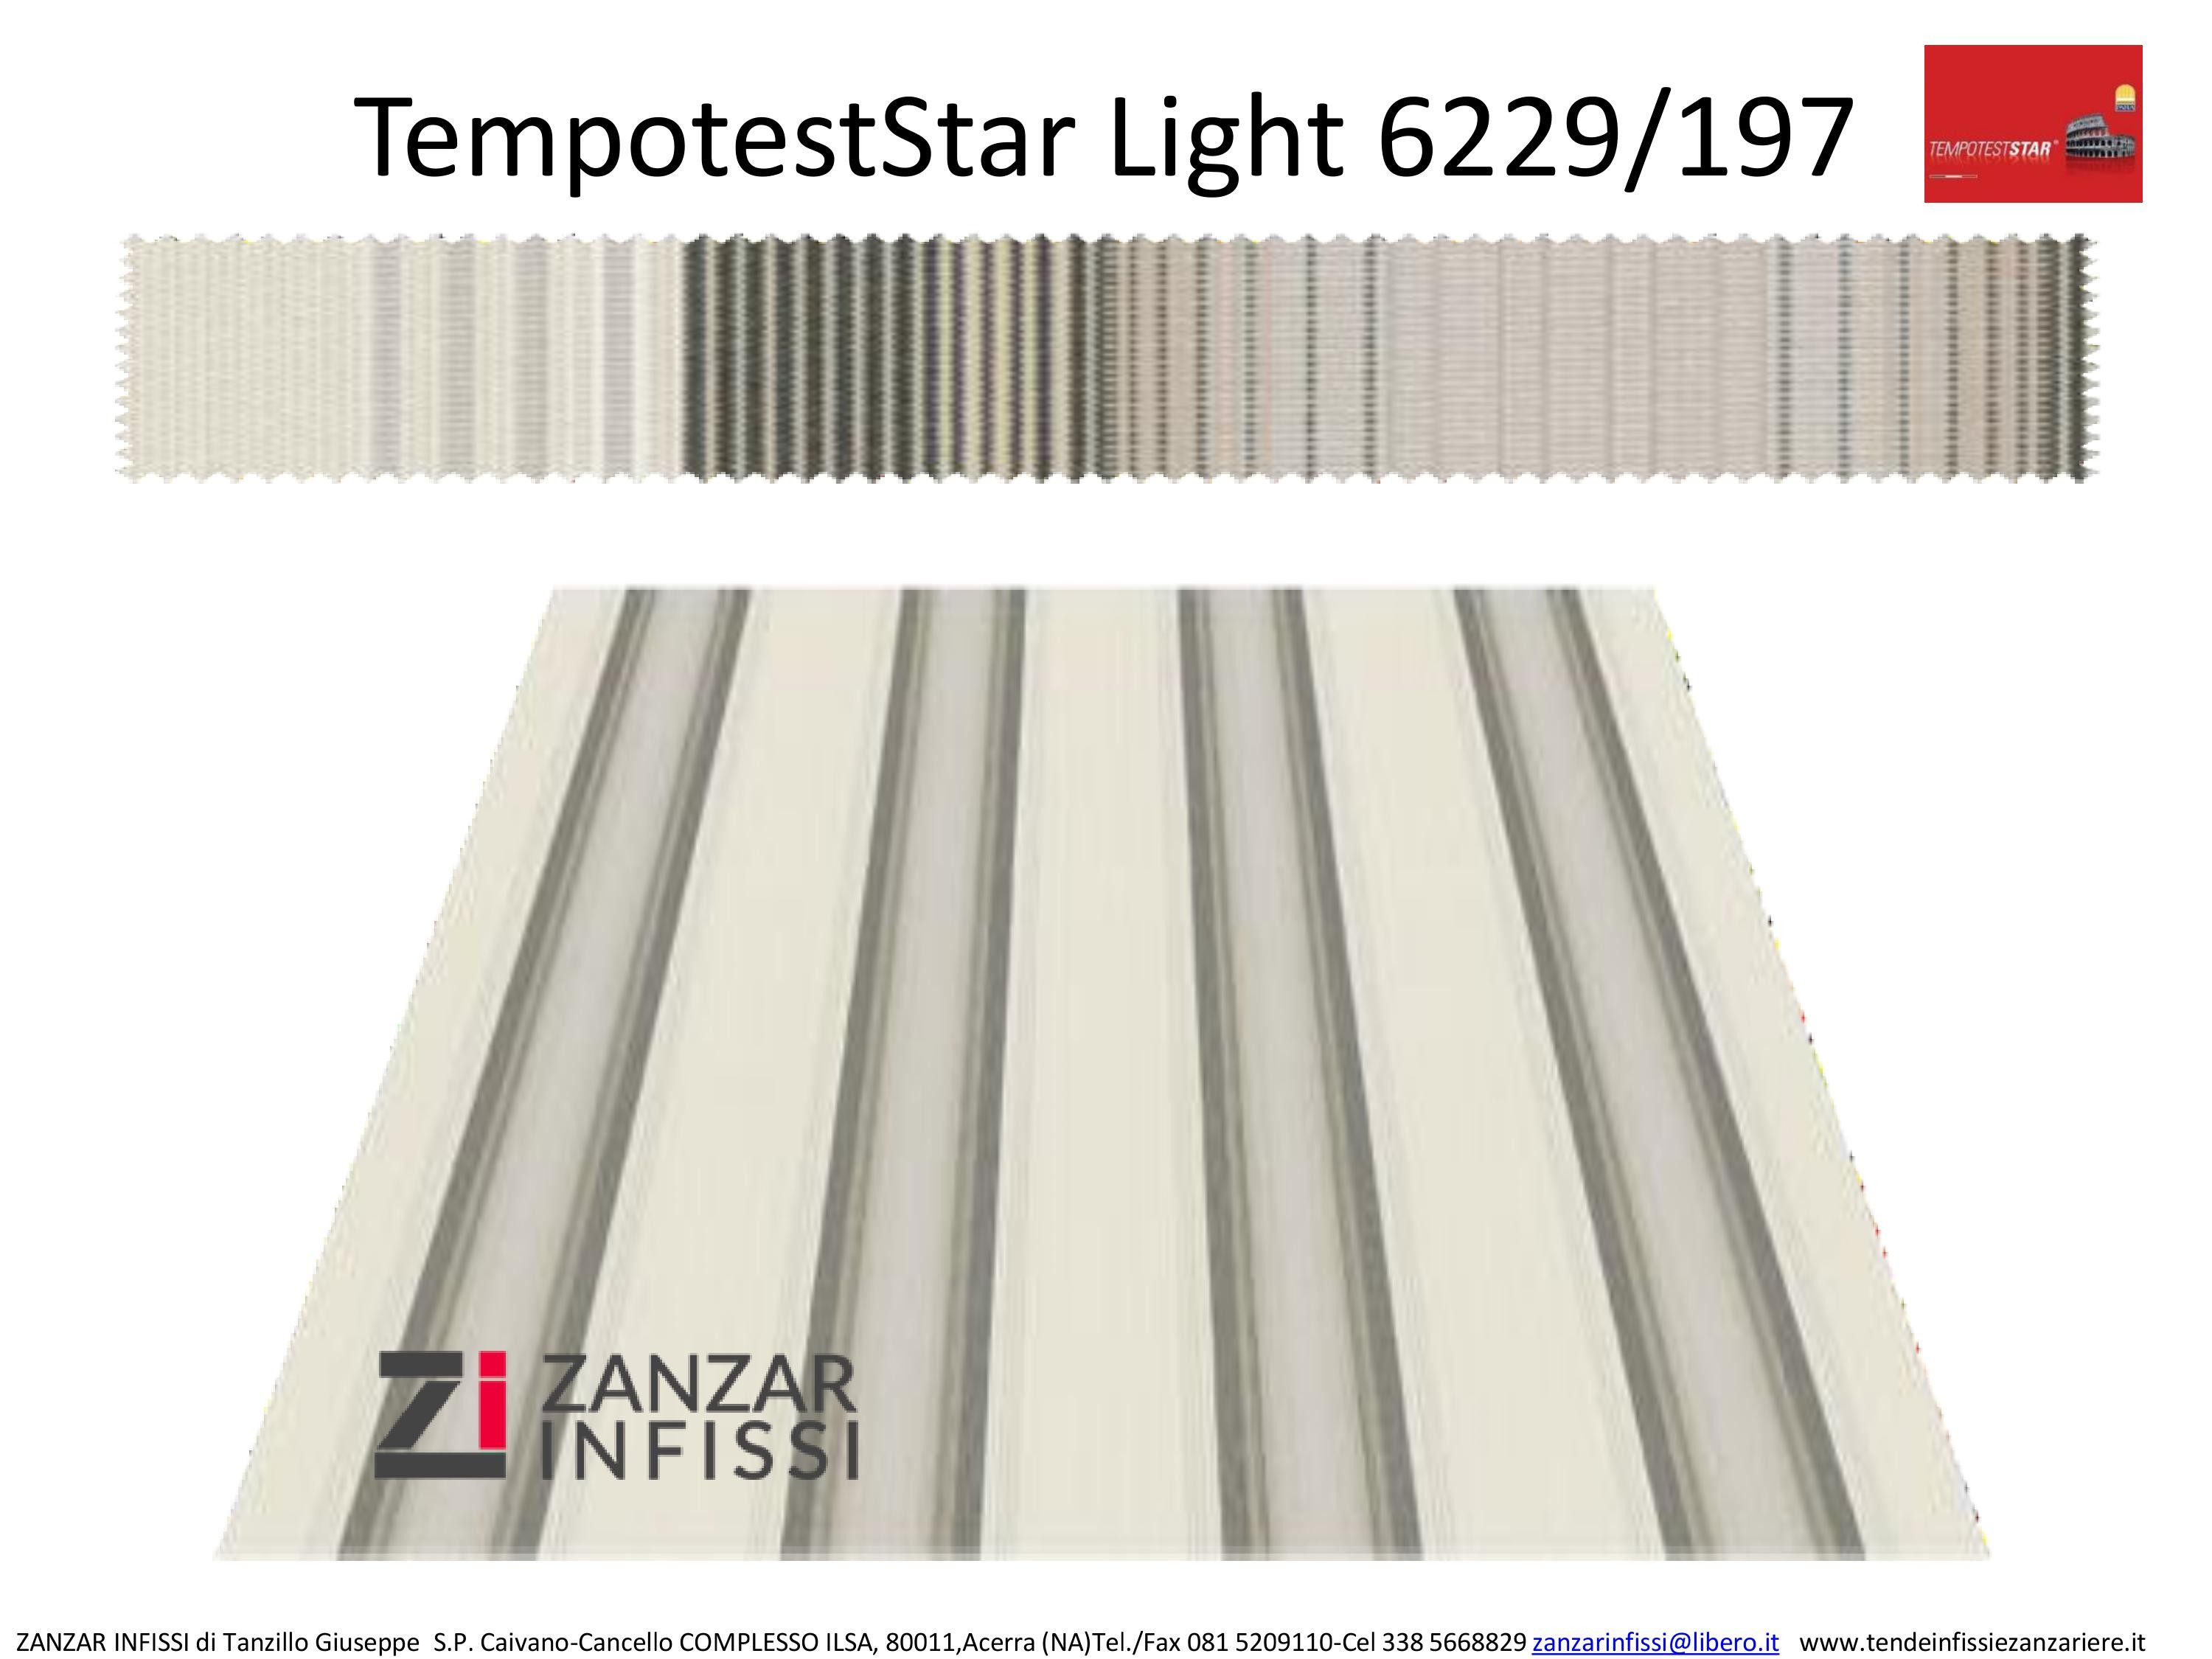 Tempotest star light 6229/197